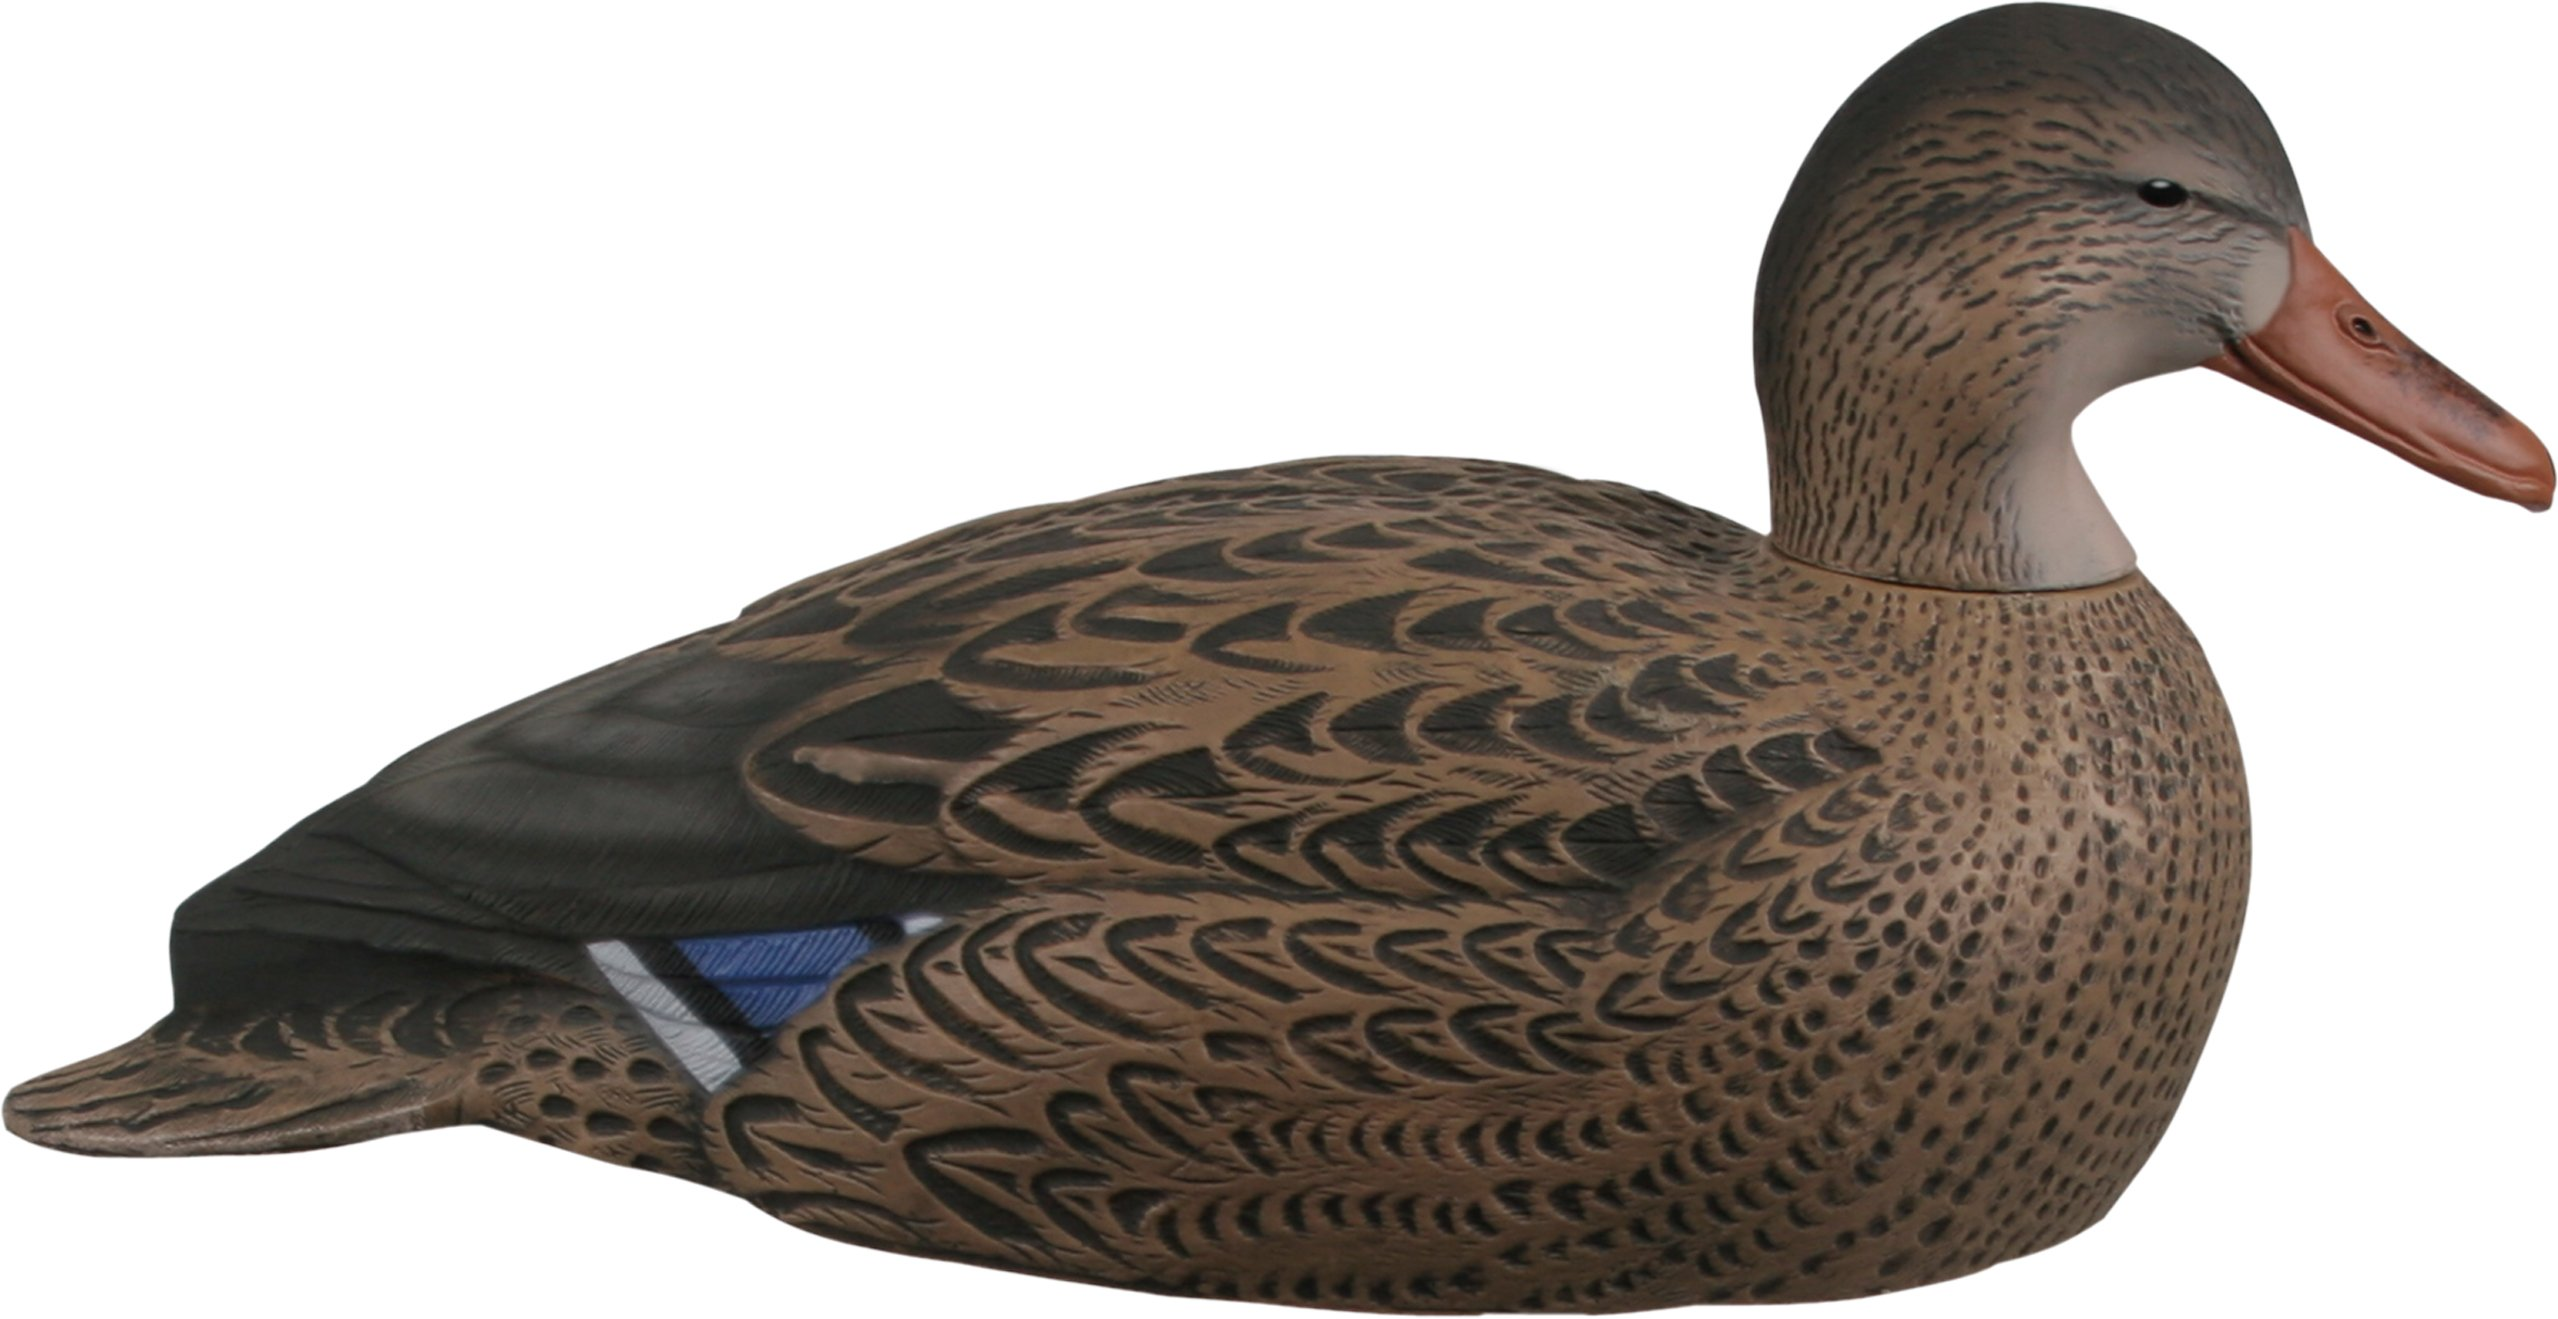 Avery GHG Over-Sized Mallard Shells with Motion Stakes - Dozen-Harvesters, AV-70167 by GreenHead Gear (Image #6)